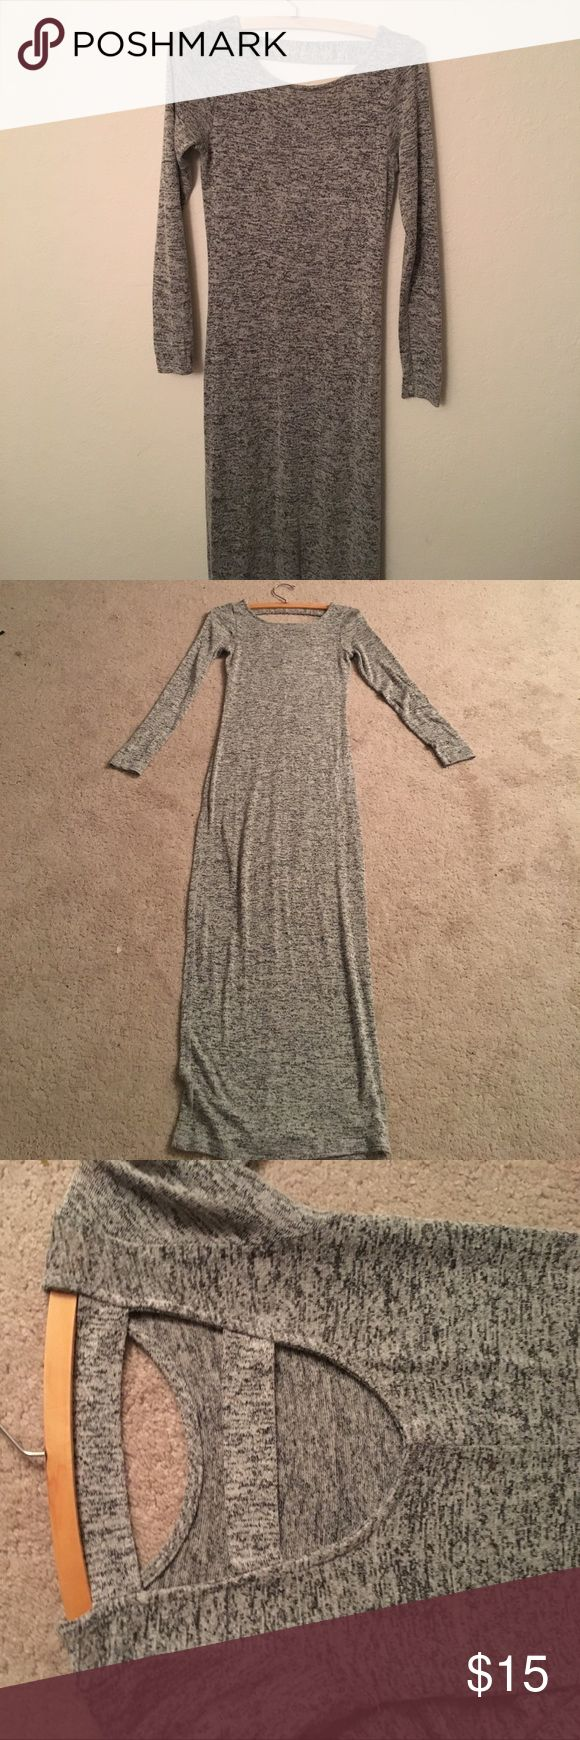 Skintight heather grey maxi dress Skintight heather gray knit maxi dress with a cool back. Barely worn. Long sleeve. Dresses Maxi